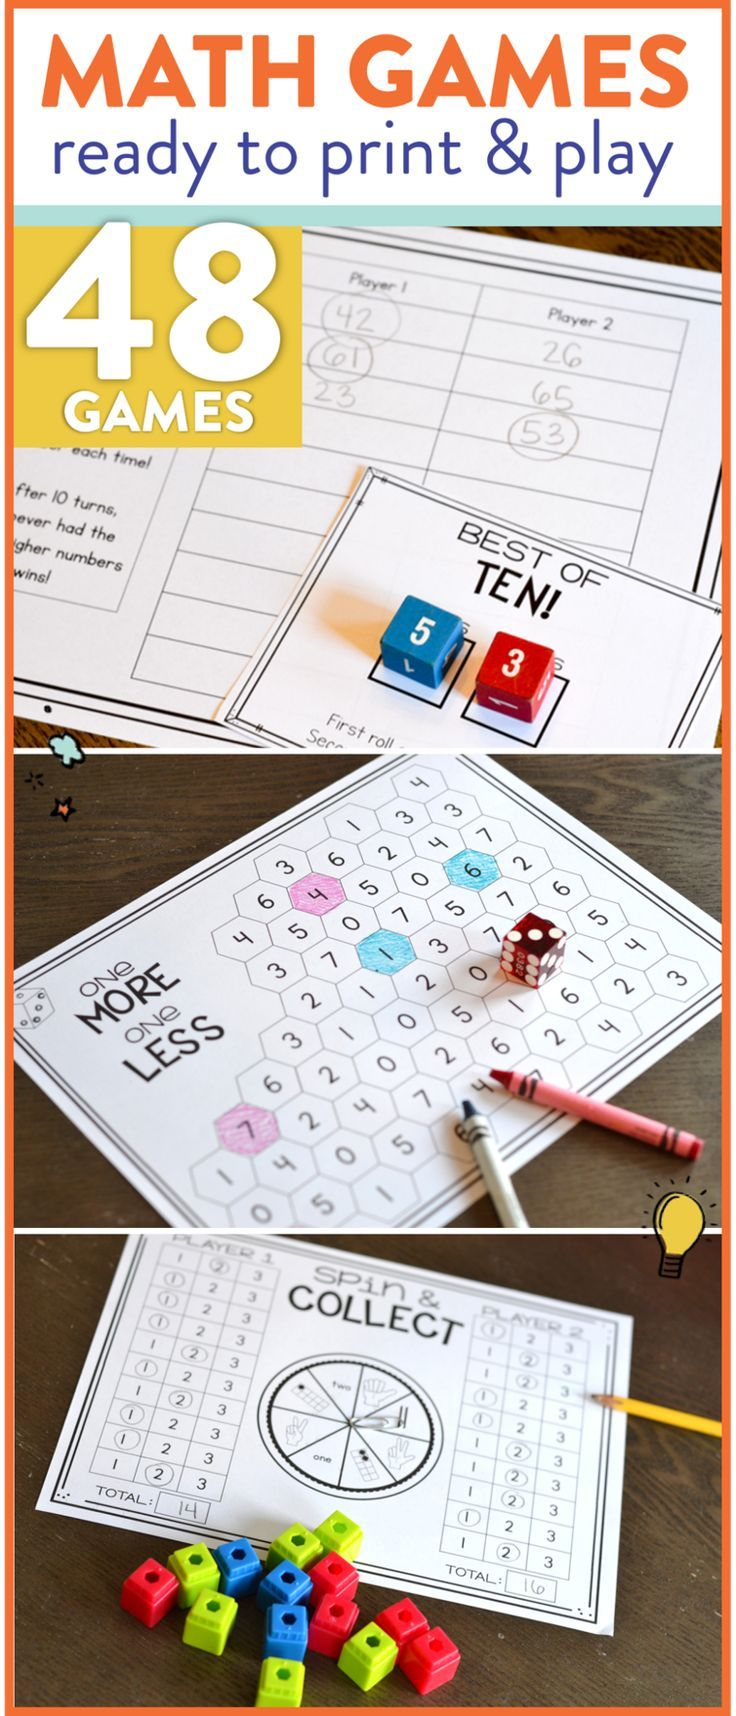 Math Games for 1st Grade Print, Play, LEARN